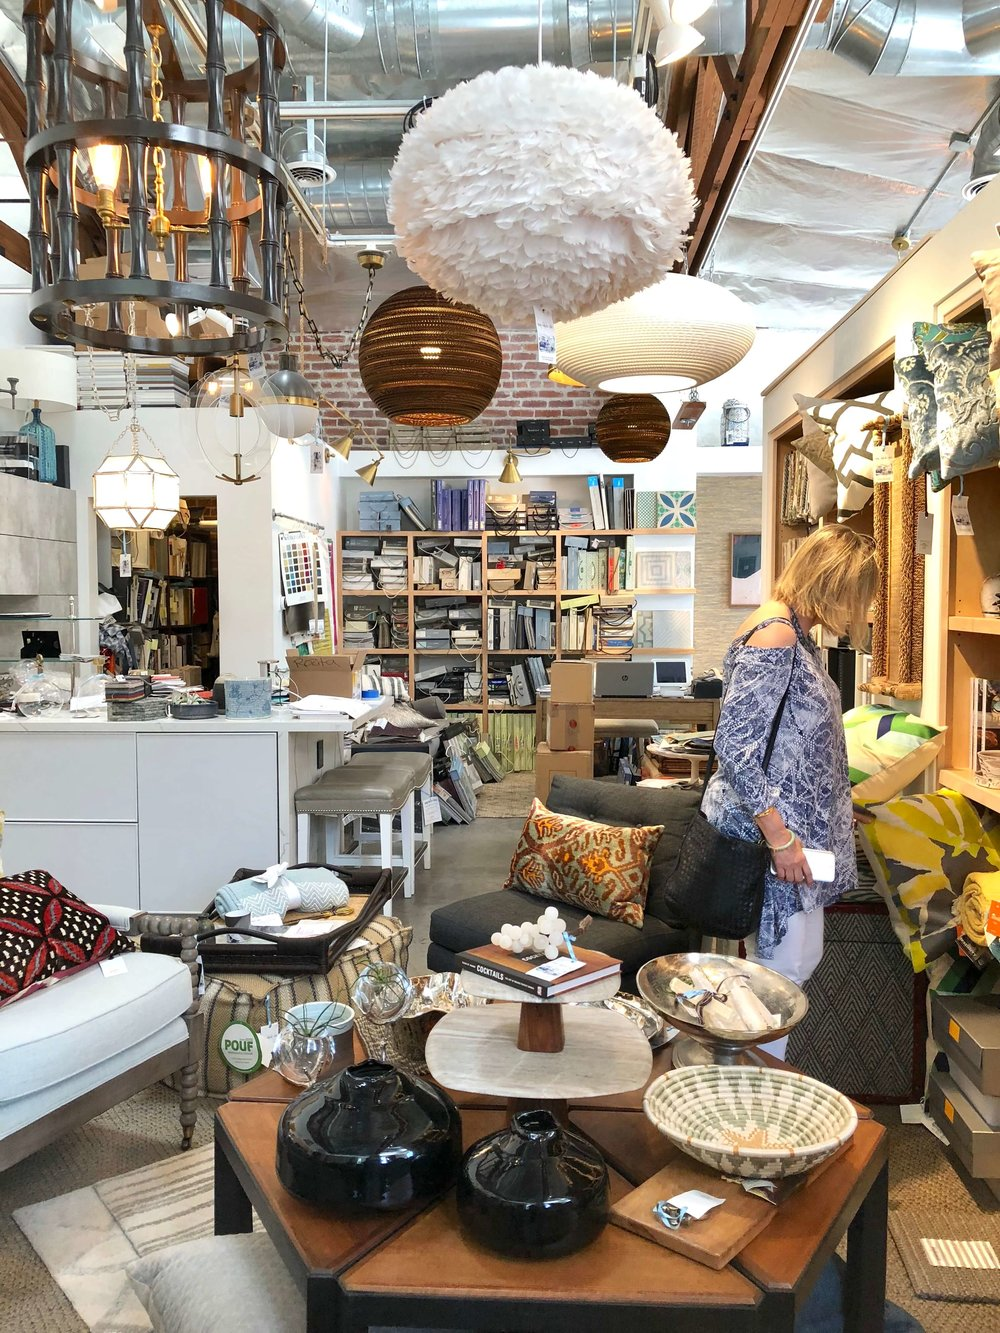 Cozy, Stylish, Chic home decor shop in Pasadena, CA, owned by Jeanne K. Chung, pictured is Deborah von Donop, DVD Interior Design, whom I combed the shop with after visiting the Pasadena Showcase House of Design